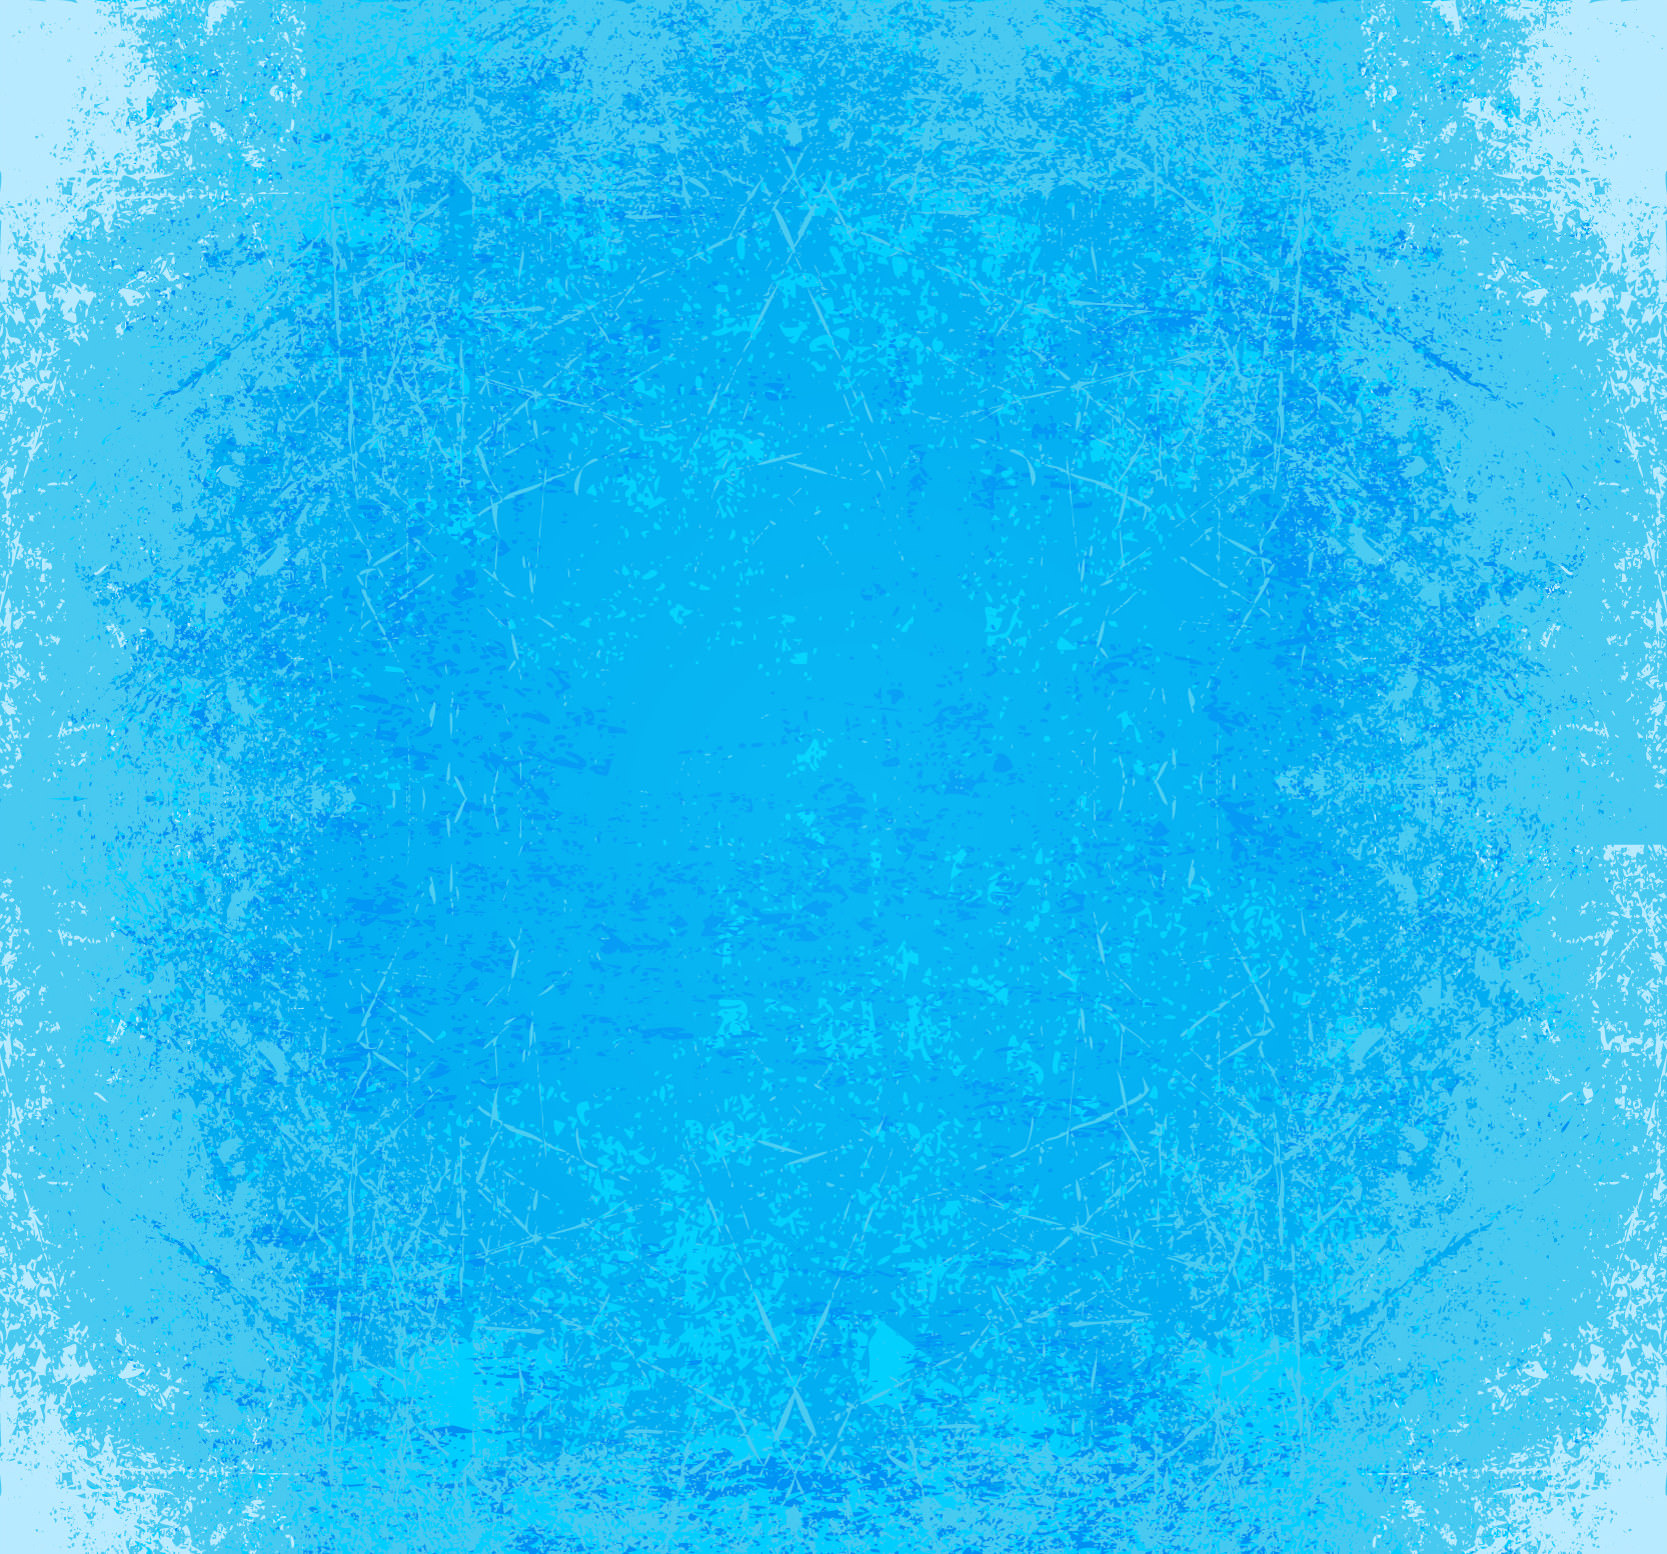 High Res Free Blue Grunge Background with Scratches